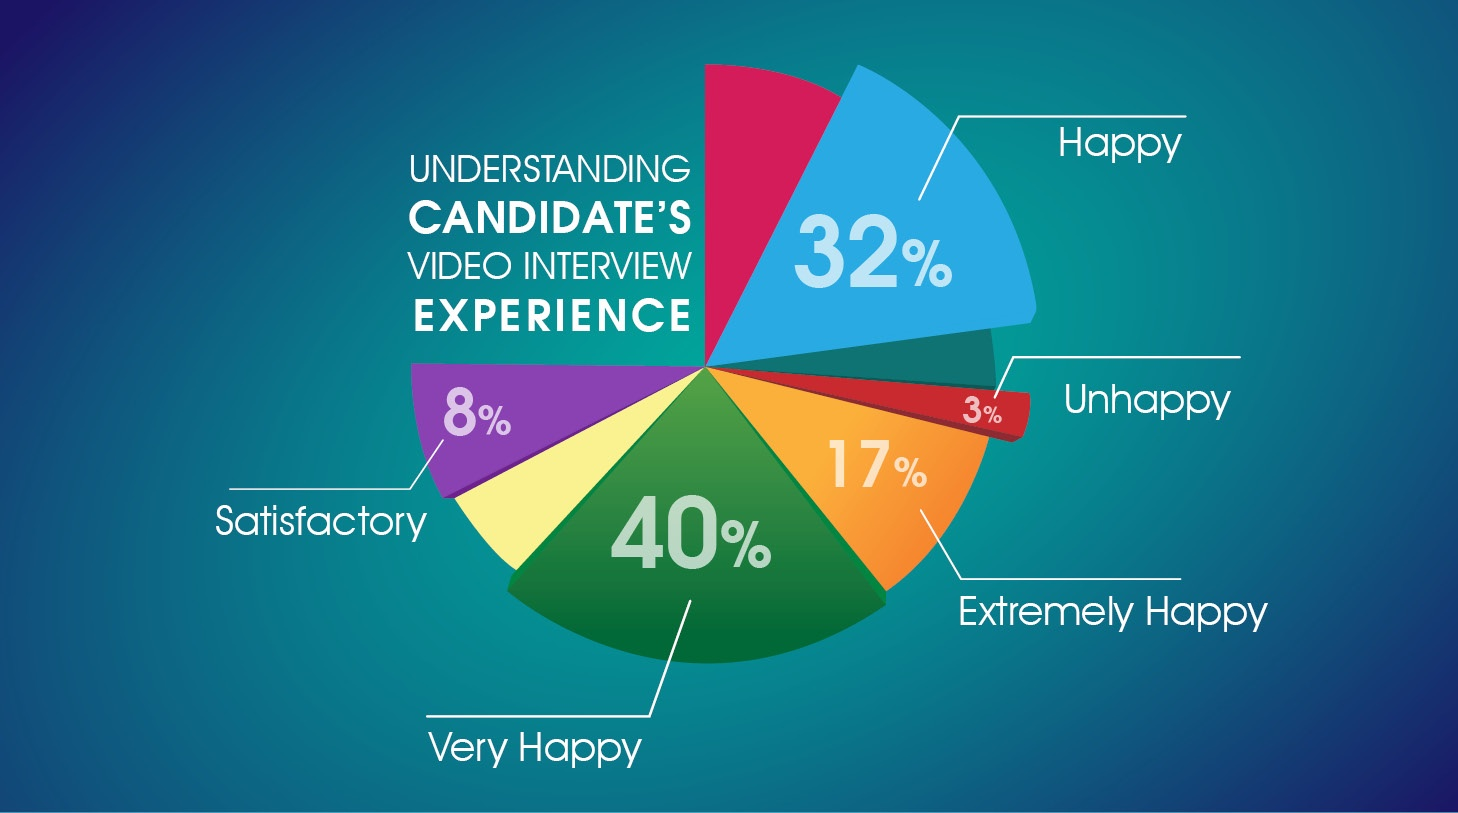 Understanding Candidates Experience Pie Chart